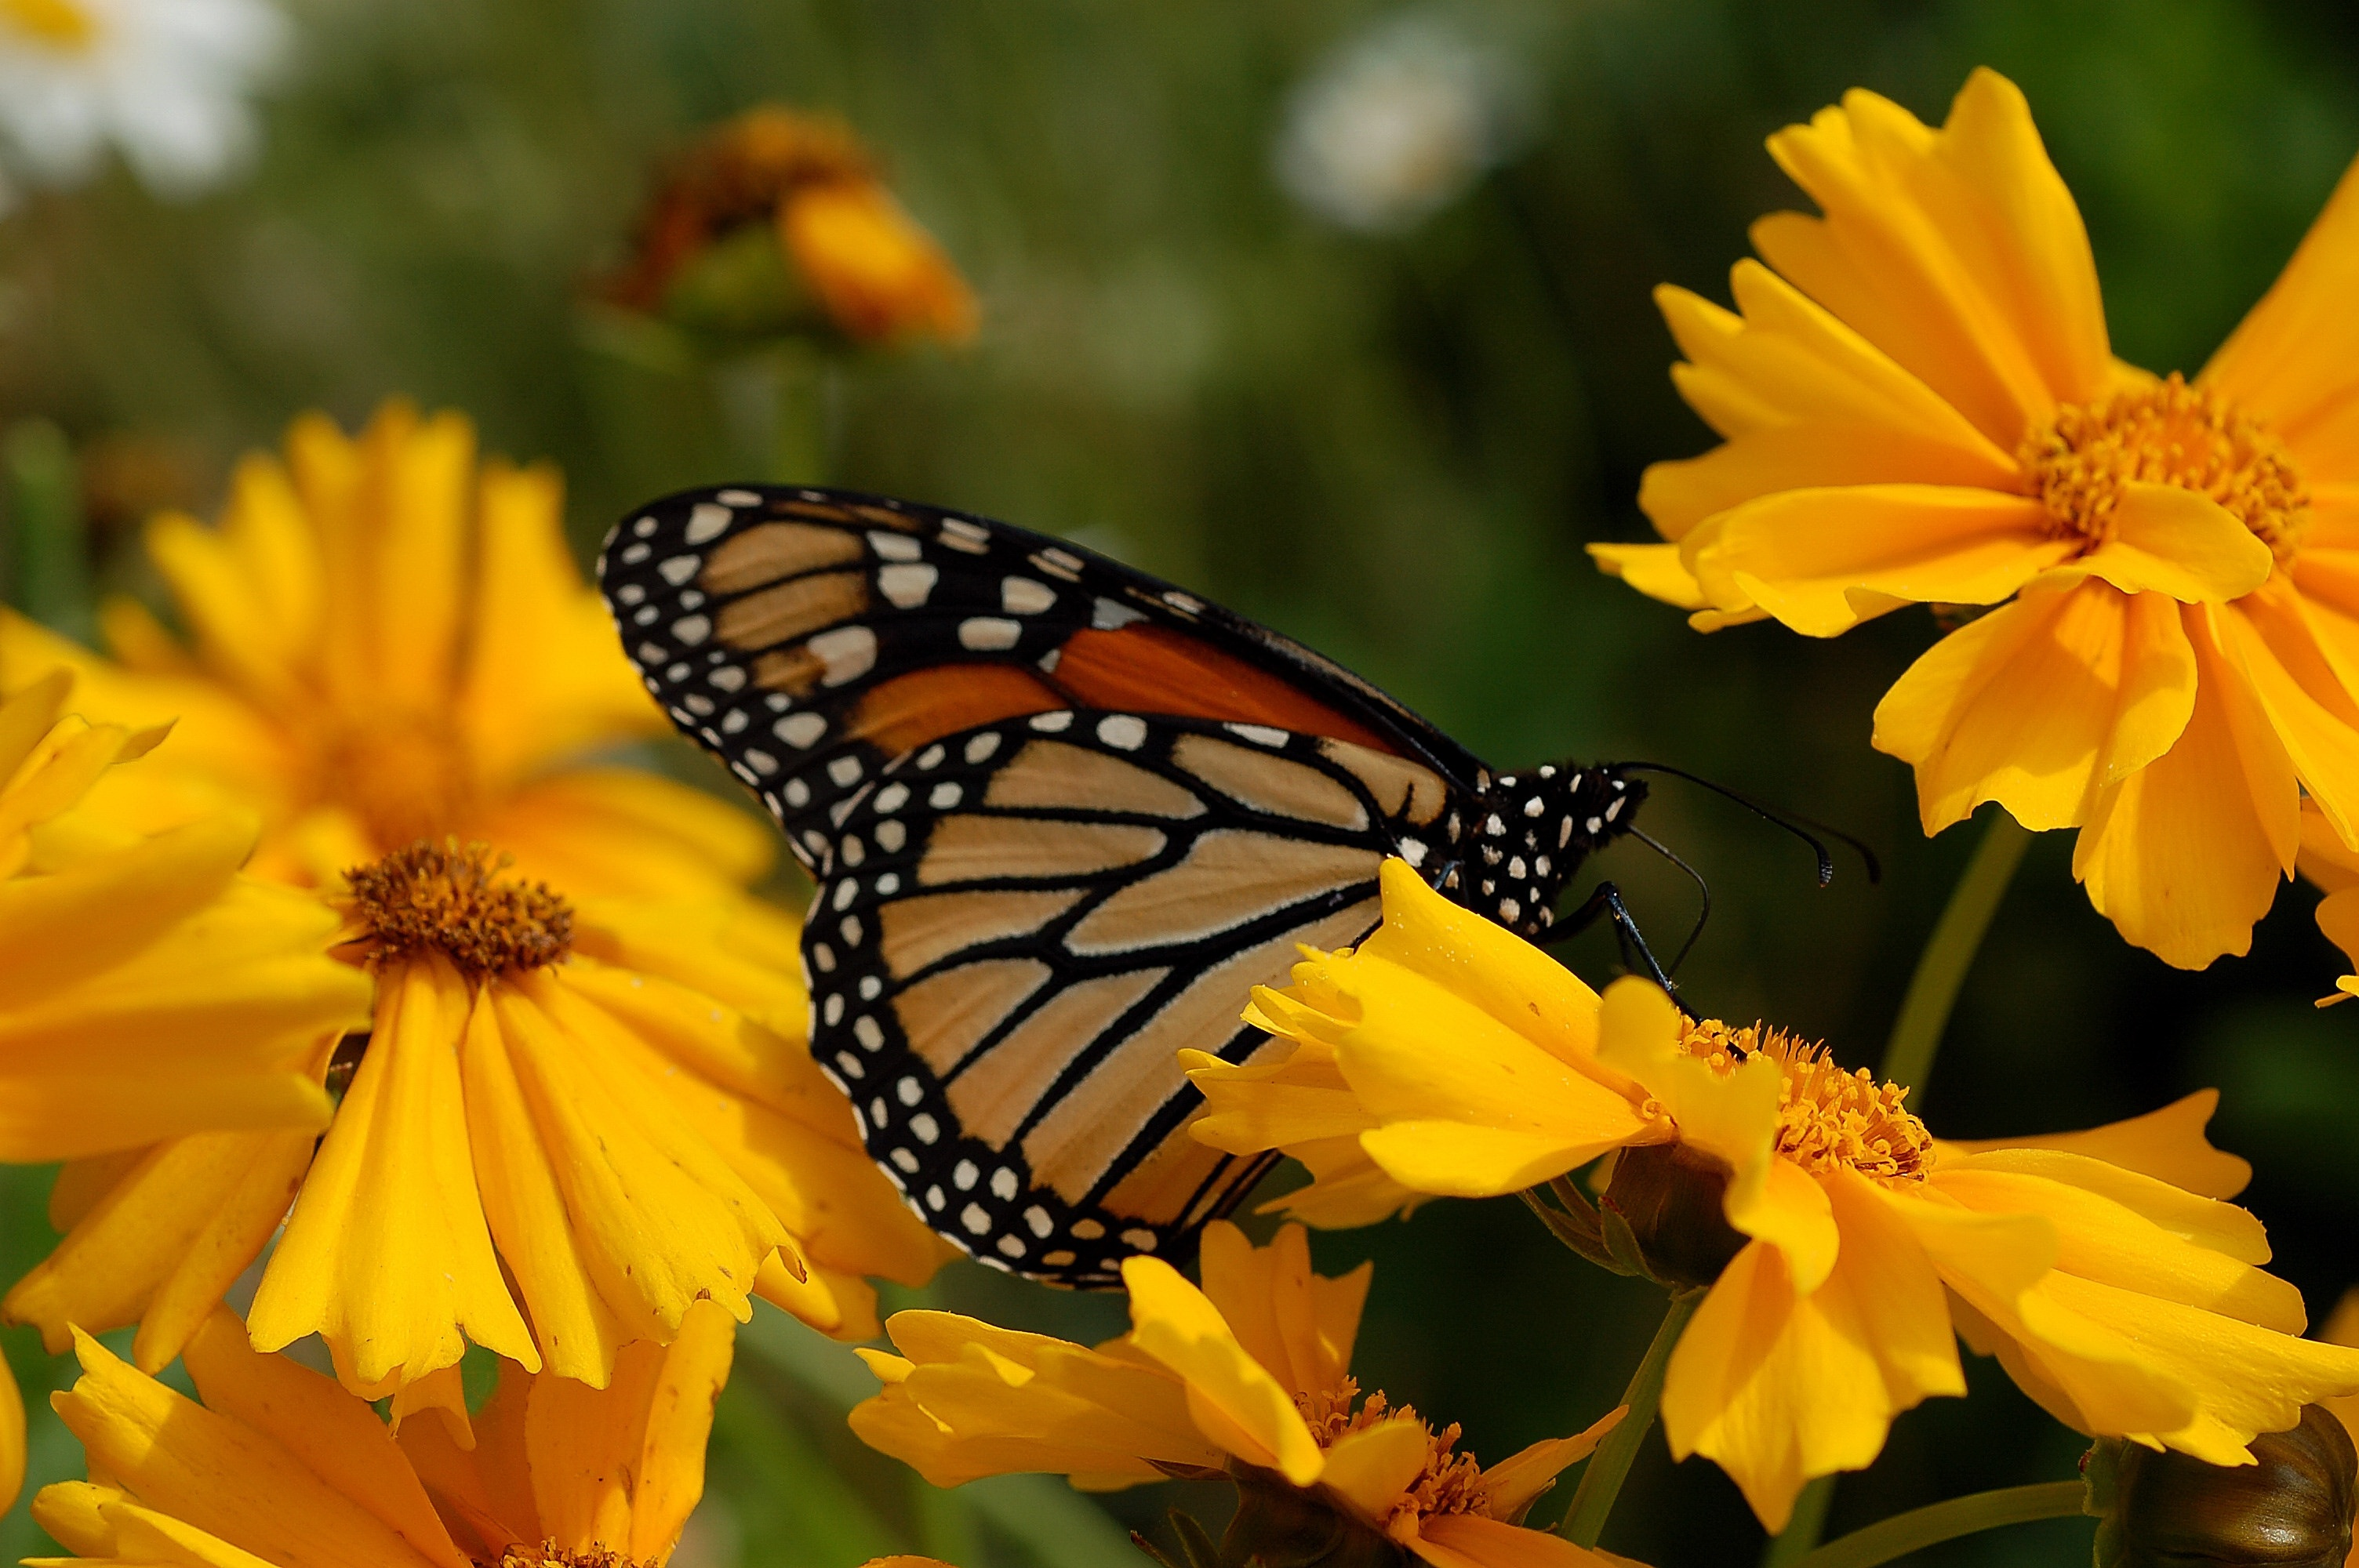 butterflies migration path tracked by generations for first time